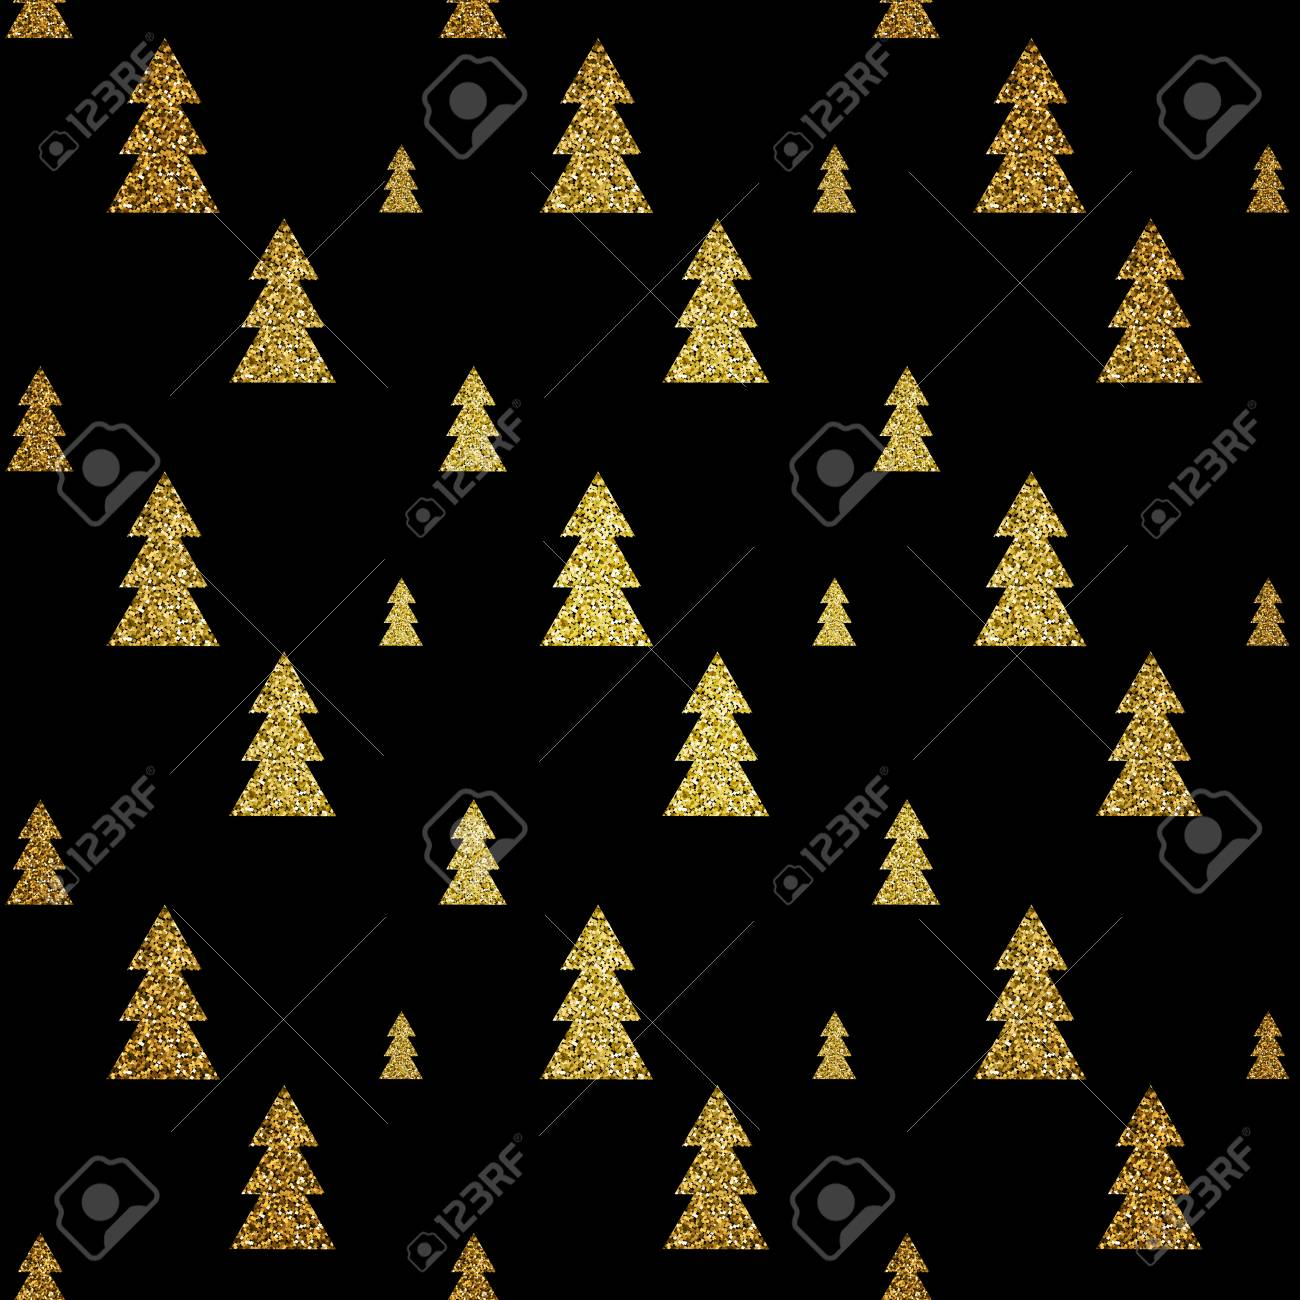 Seamless Pattern Of Gold Christmas Tree On Black Background